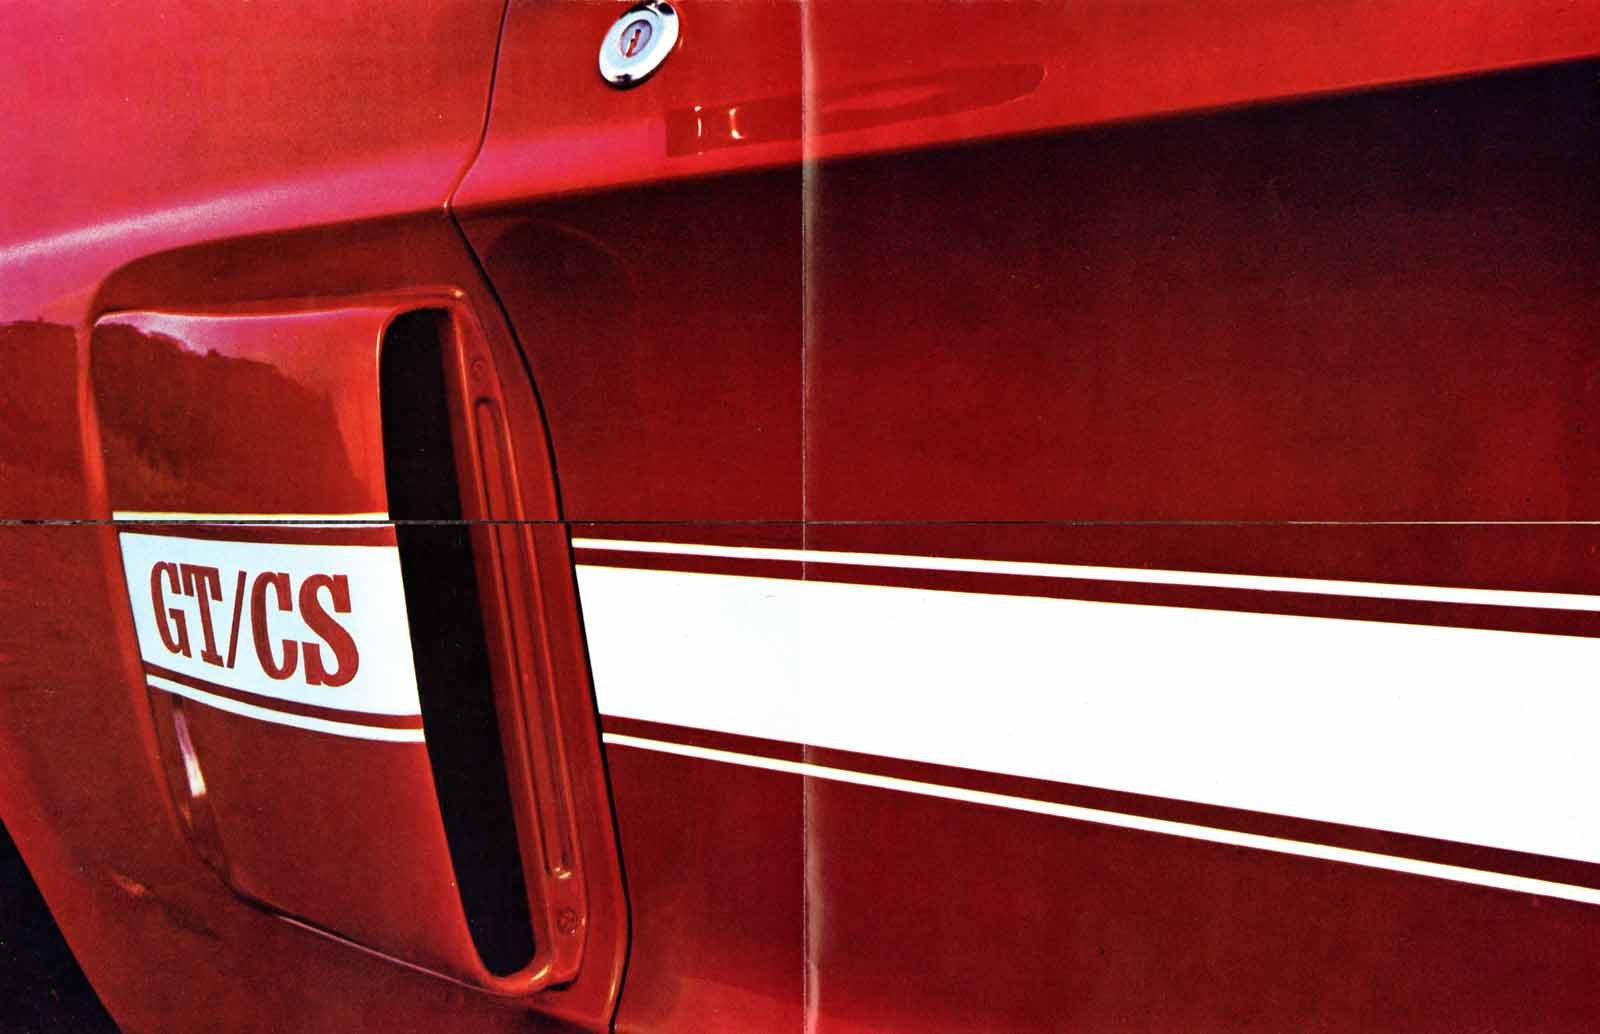 California Made it Happen: The History of the Mustang GT/CS